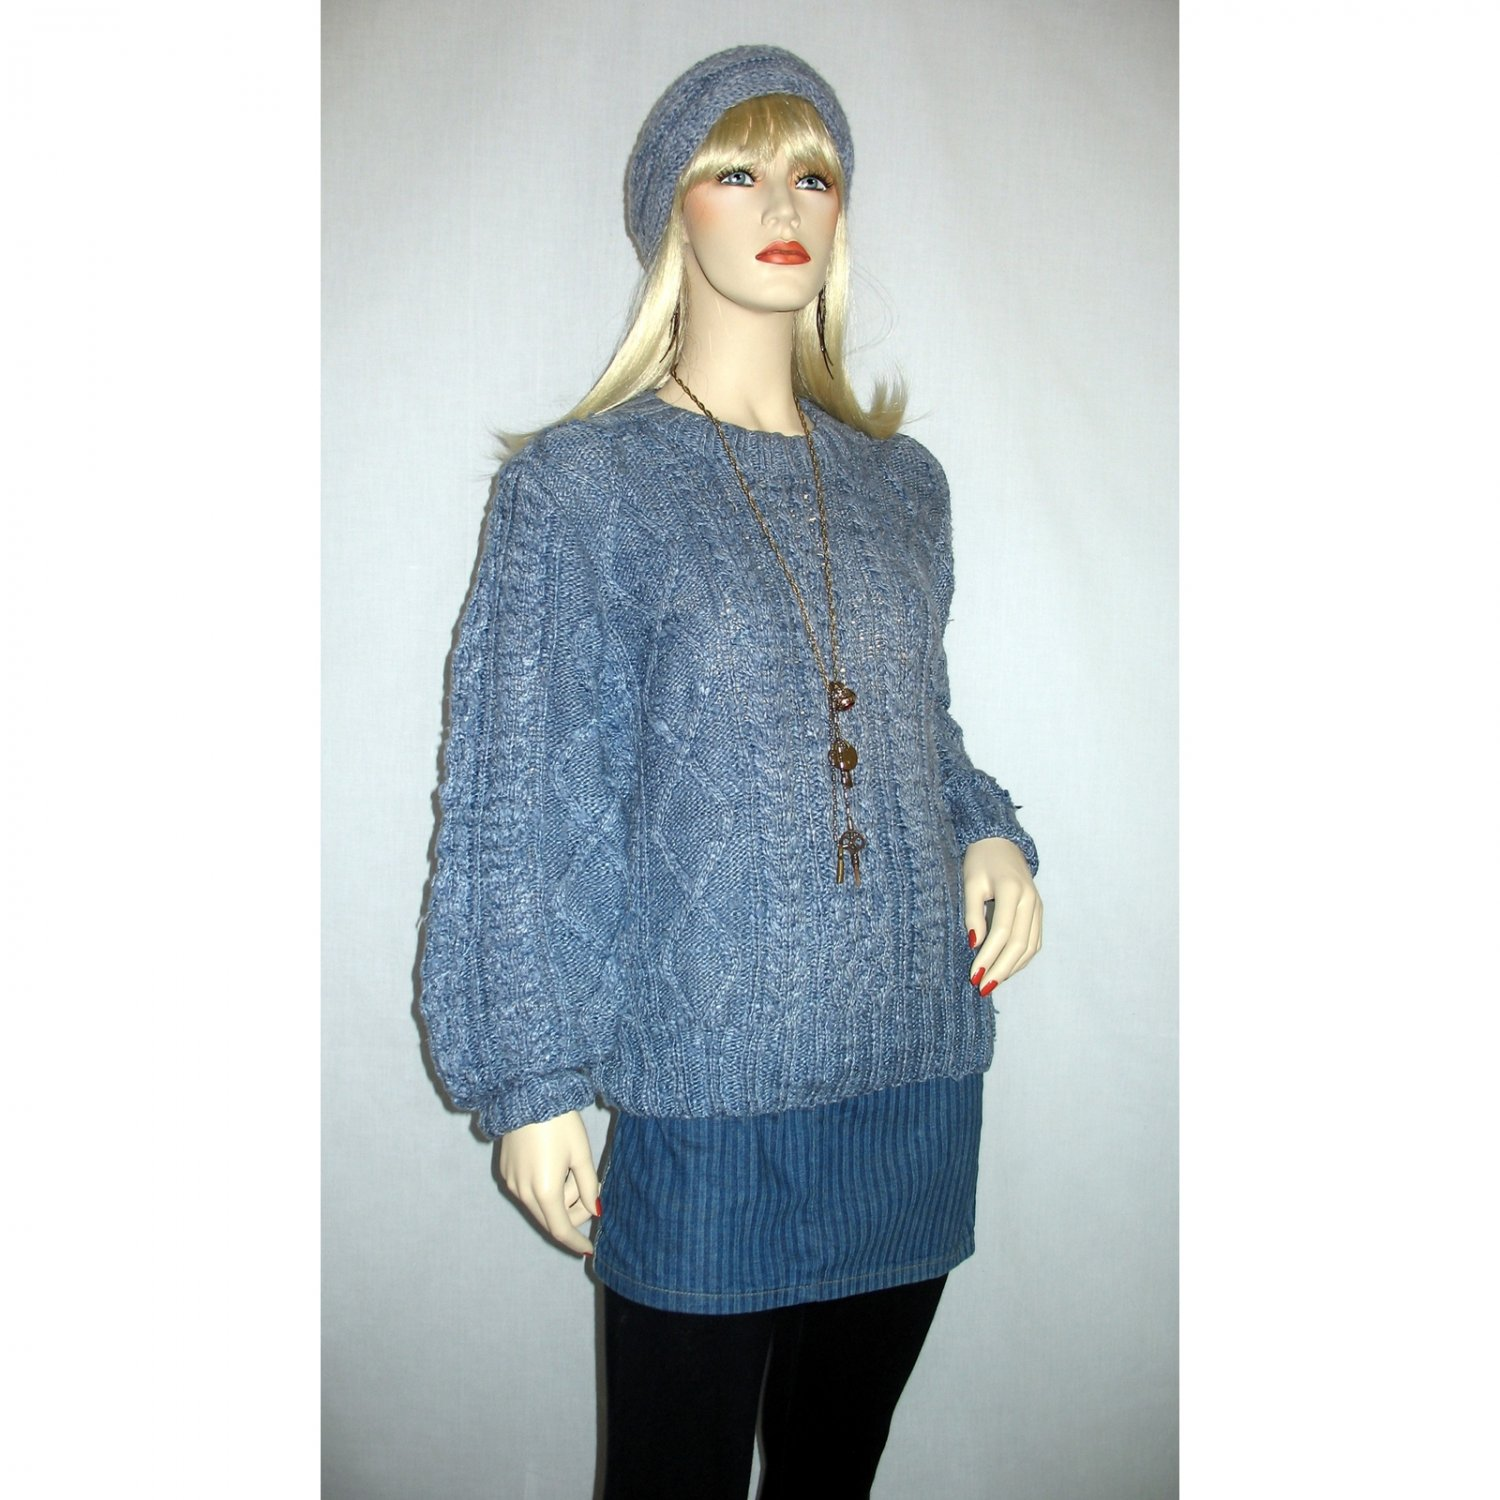 Vintage SILK Cable Knit Pullover Sweater / Chunky Nubby Knit - S / M